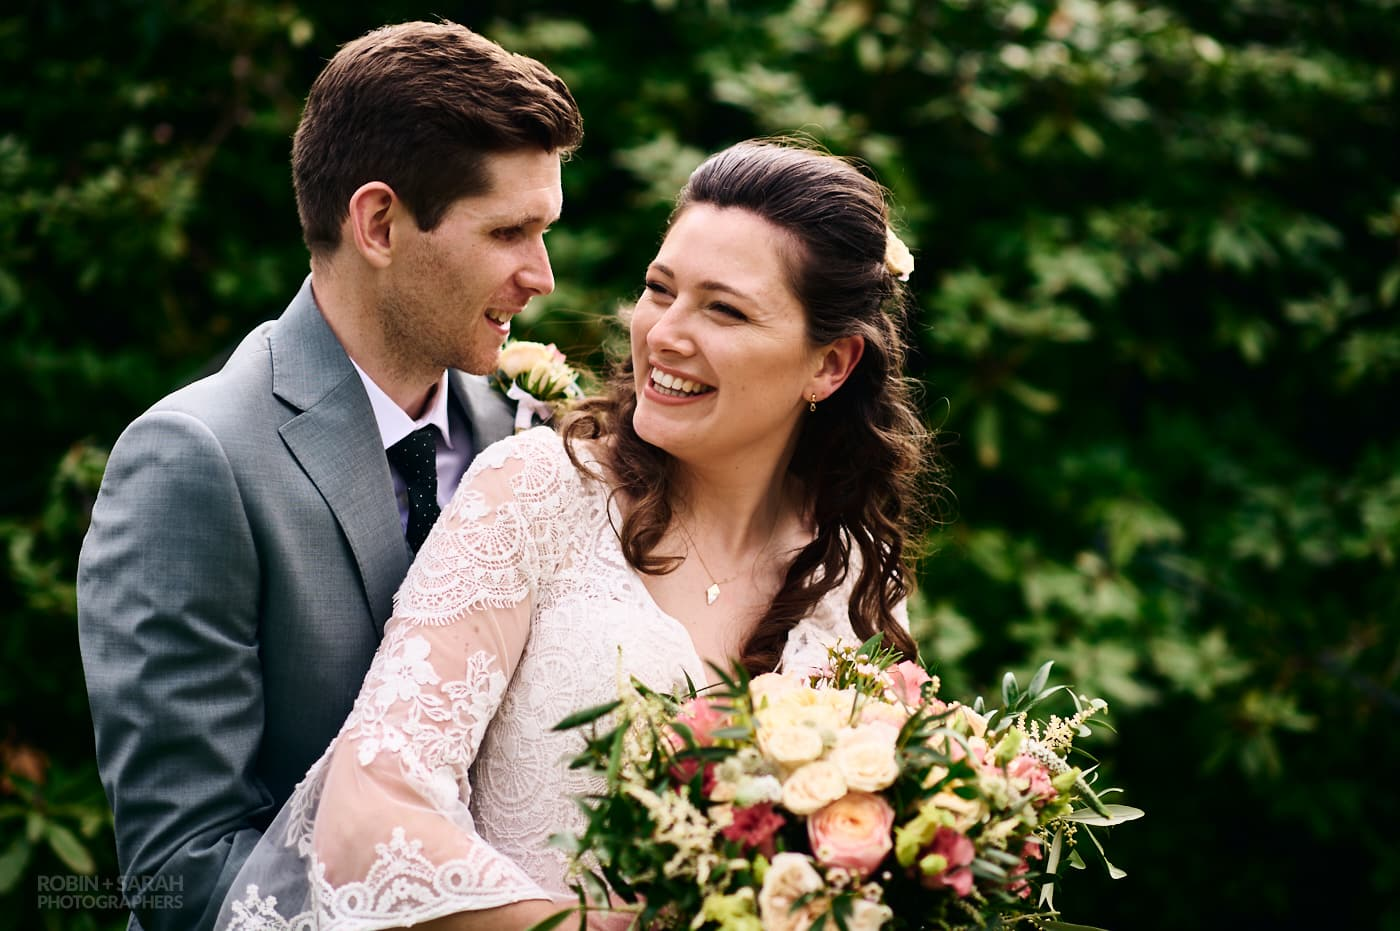 Bride and groom laughing together at garden wedding reception